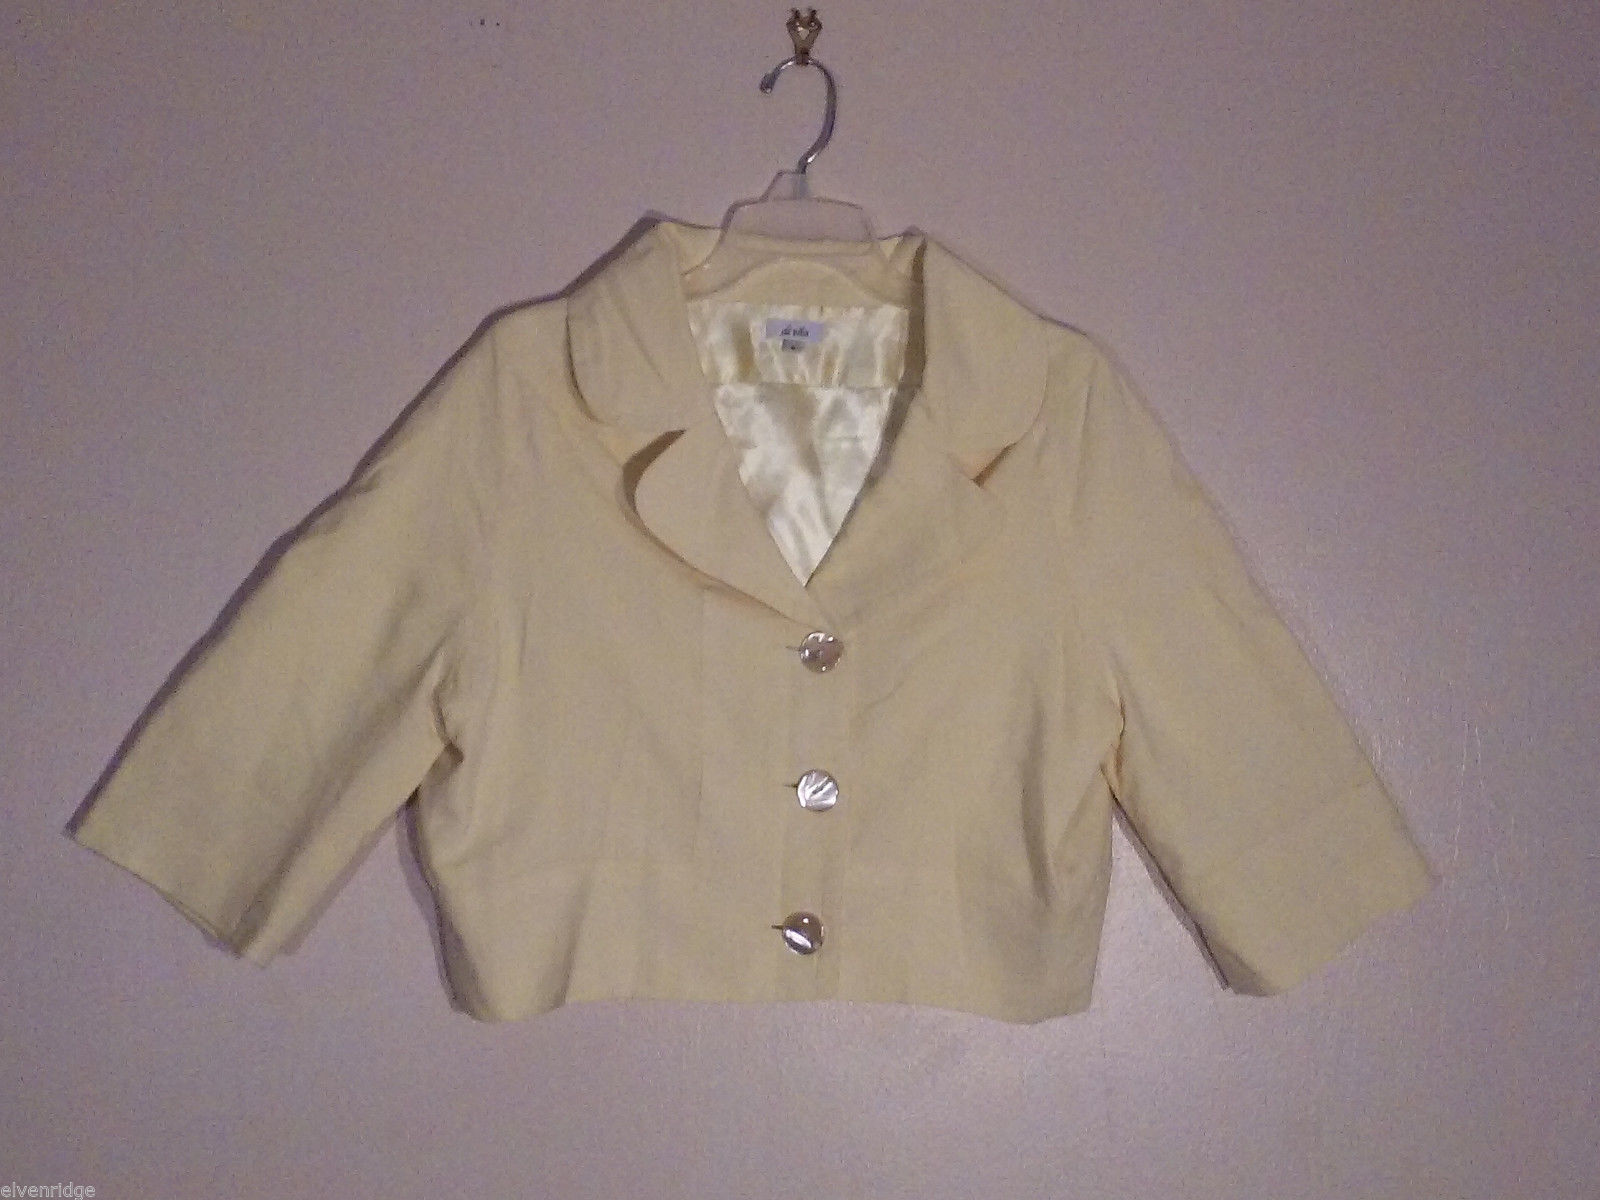 Di Vita Women's Size 6 Jacket Bolero Short Cropped Pastel Butter Yellow ¾ Sleeve